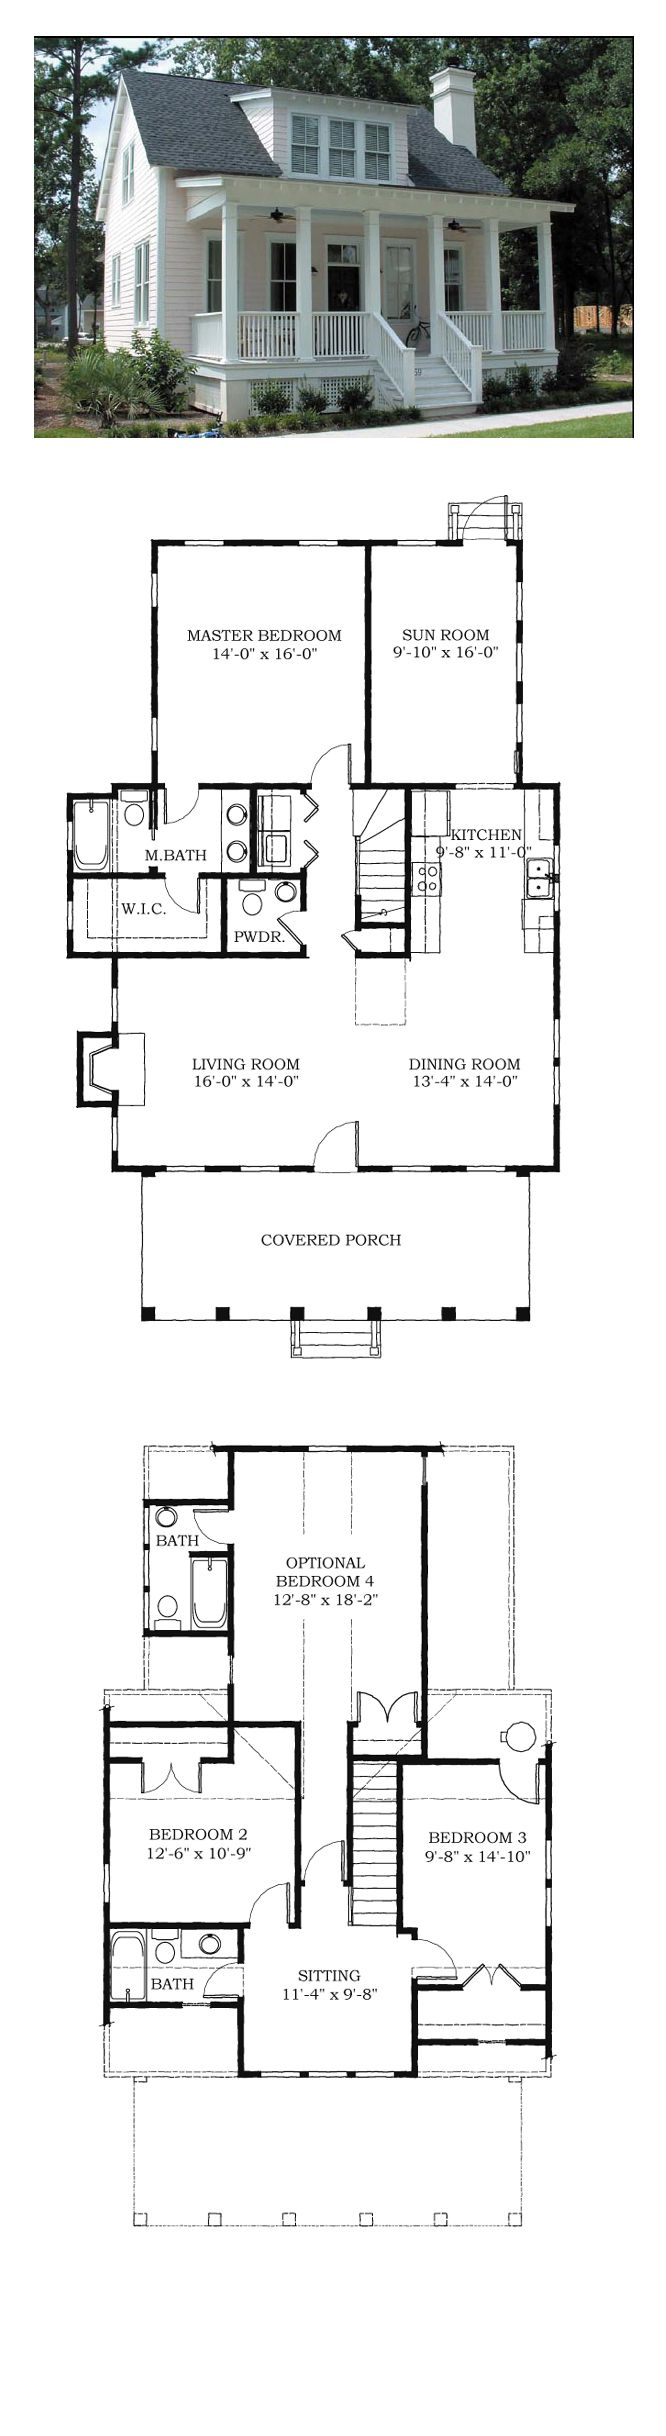 COOL House Plan ID: chp-38703 | Total Living Area: 1783 sq. ft., 4 bedrooms and 3.5 bathrooms. Good use of space for a small house, I would add a 2 car garage to it